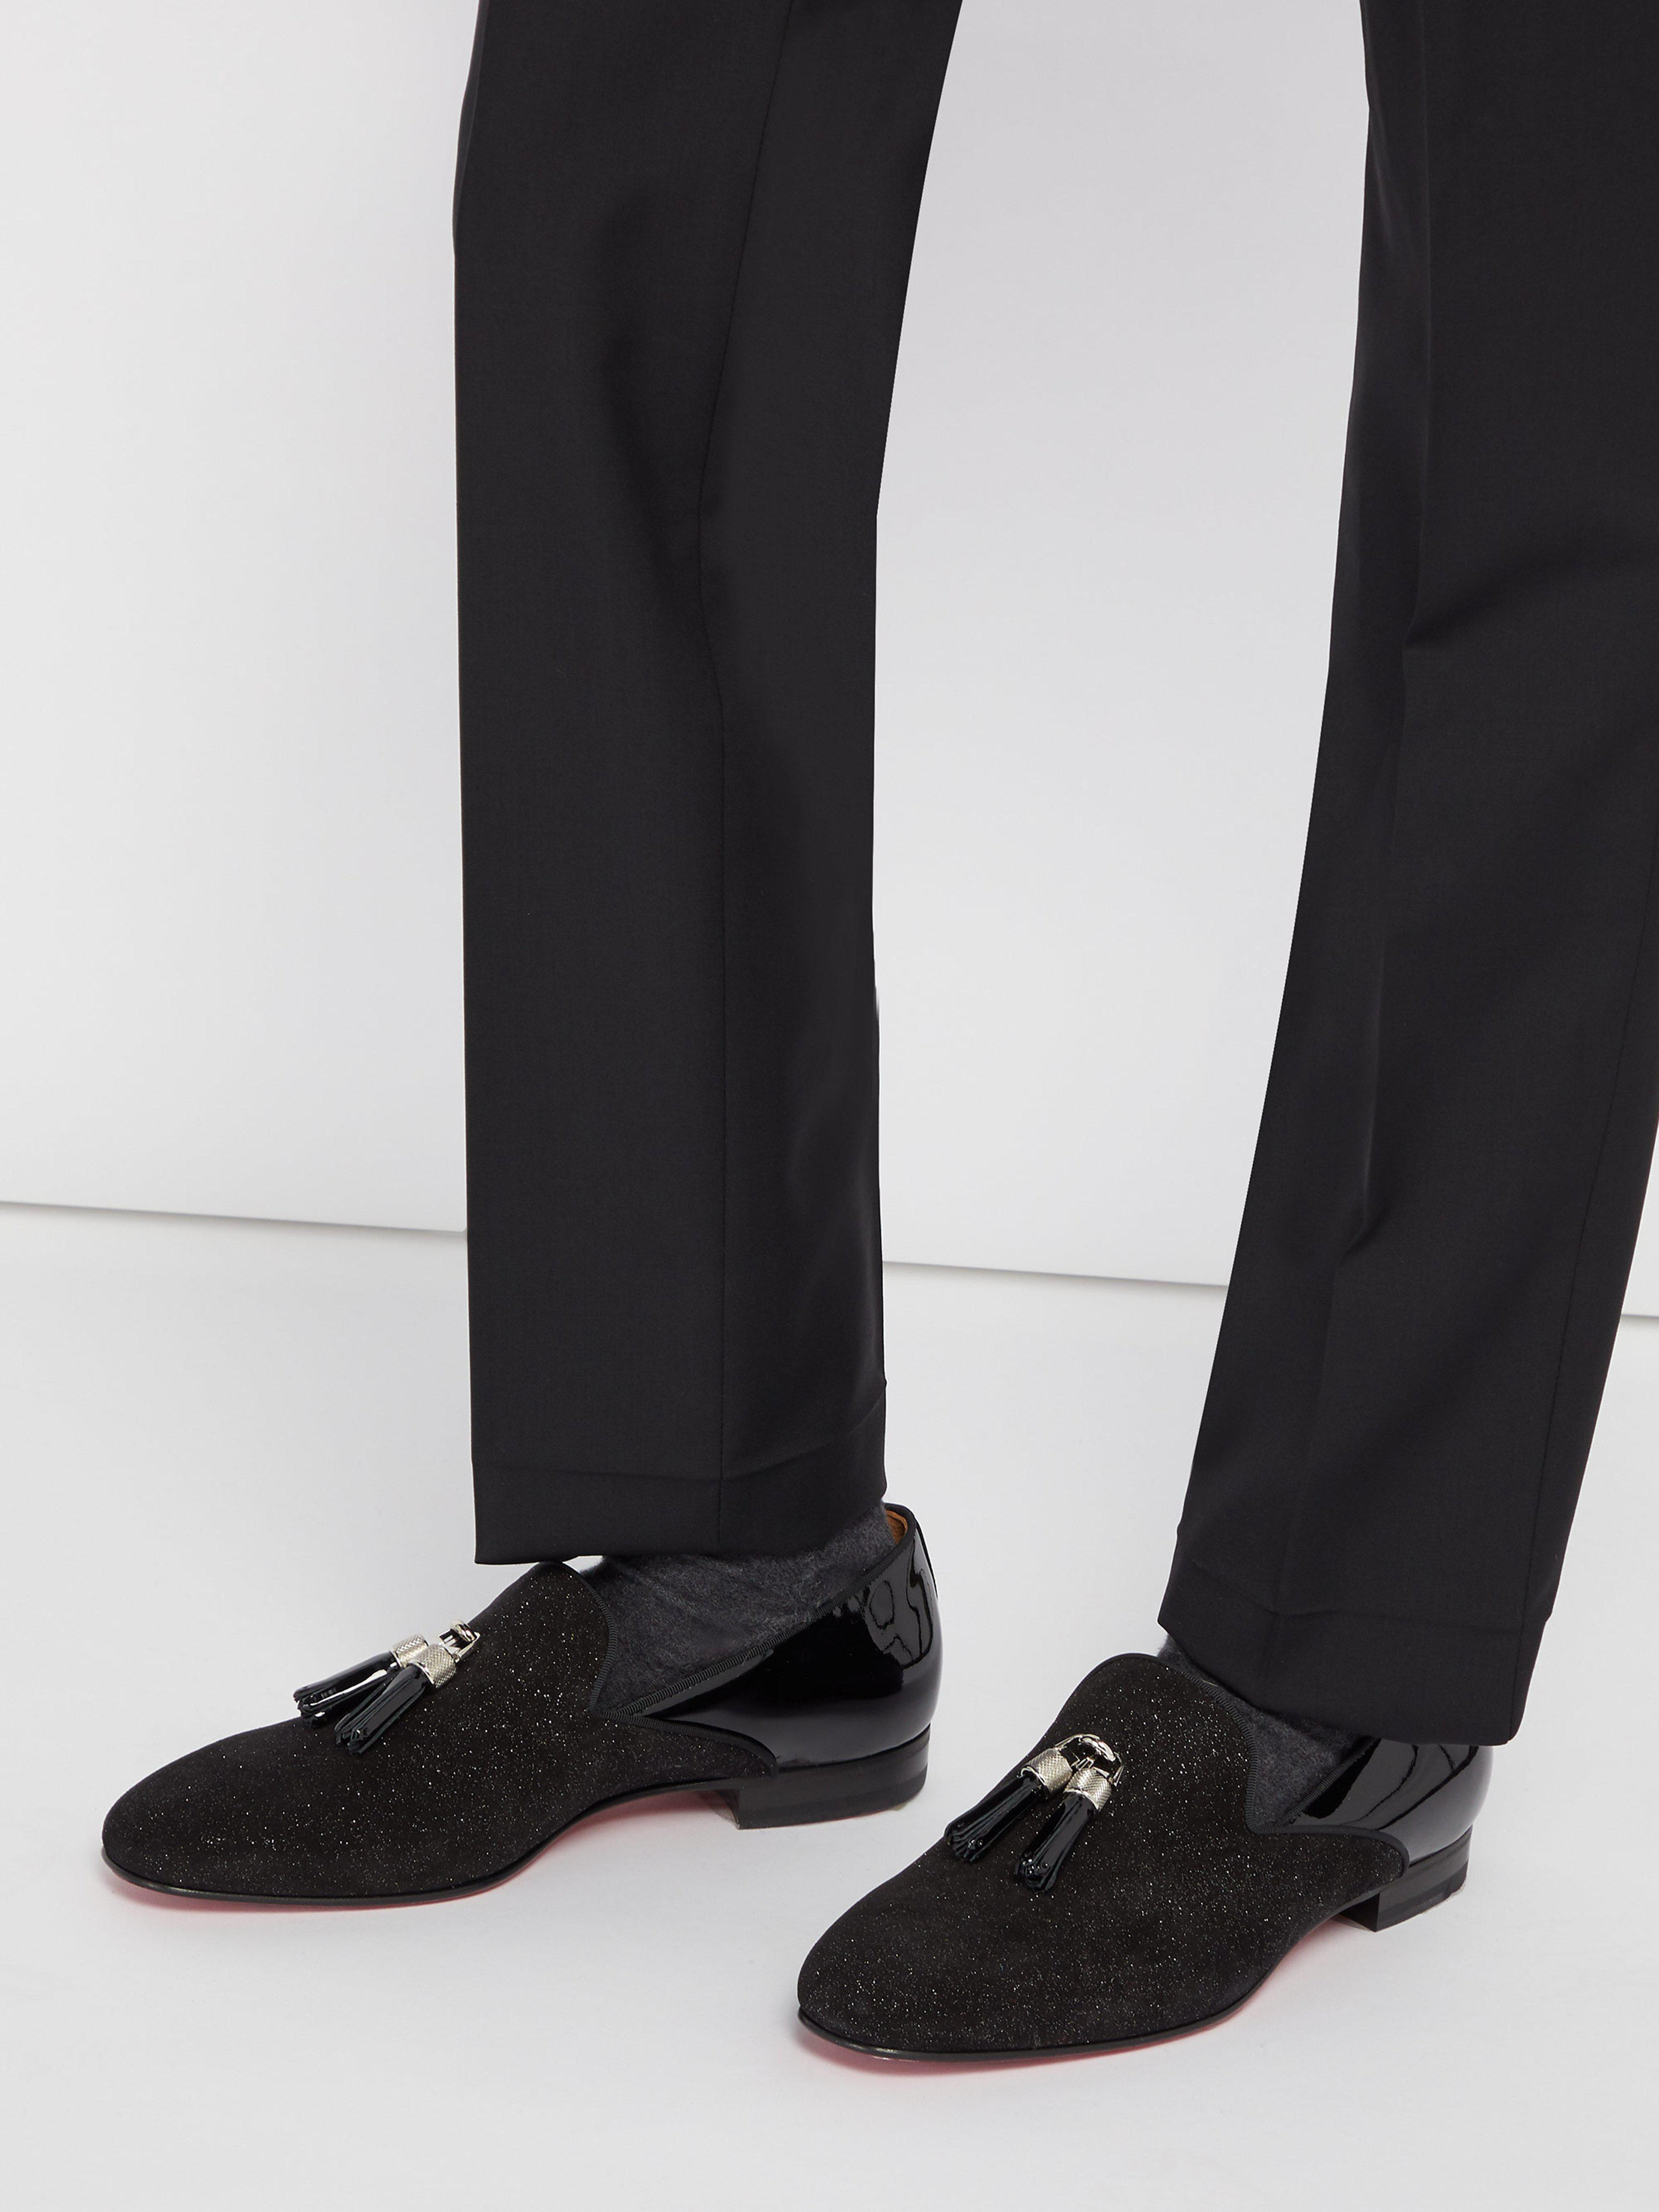 8bcea13366d Christian Louboutin Tassileon Patent Leather Loafers in Black for Men - Lyst